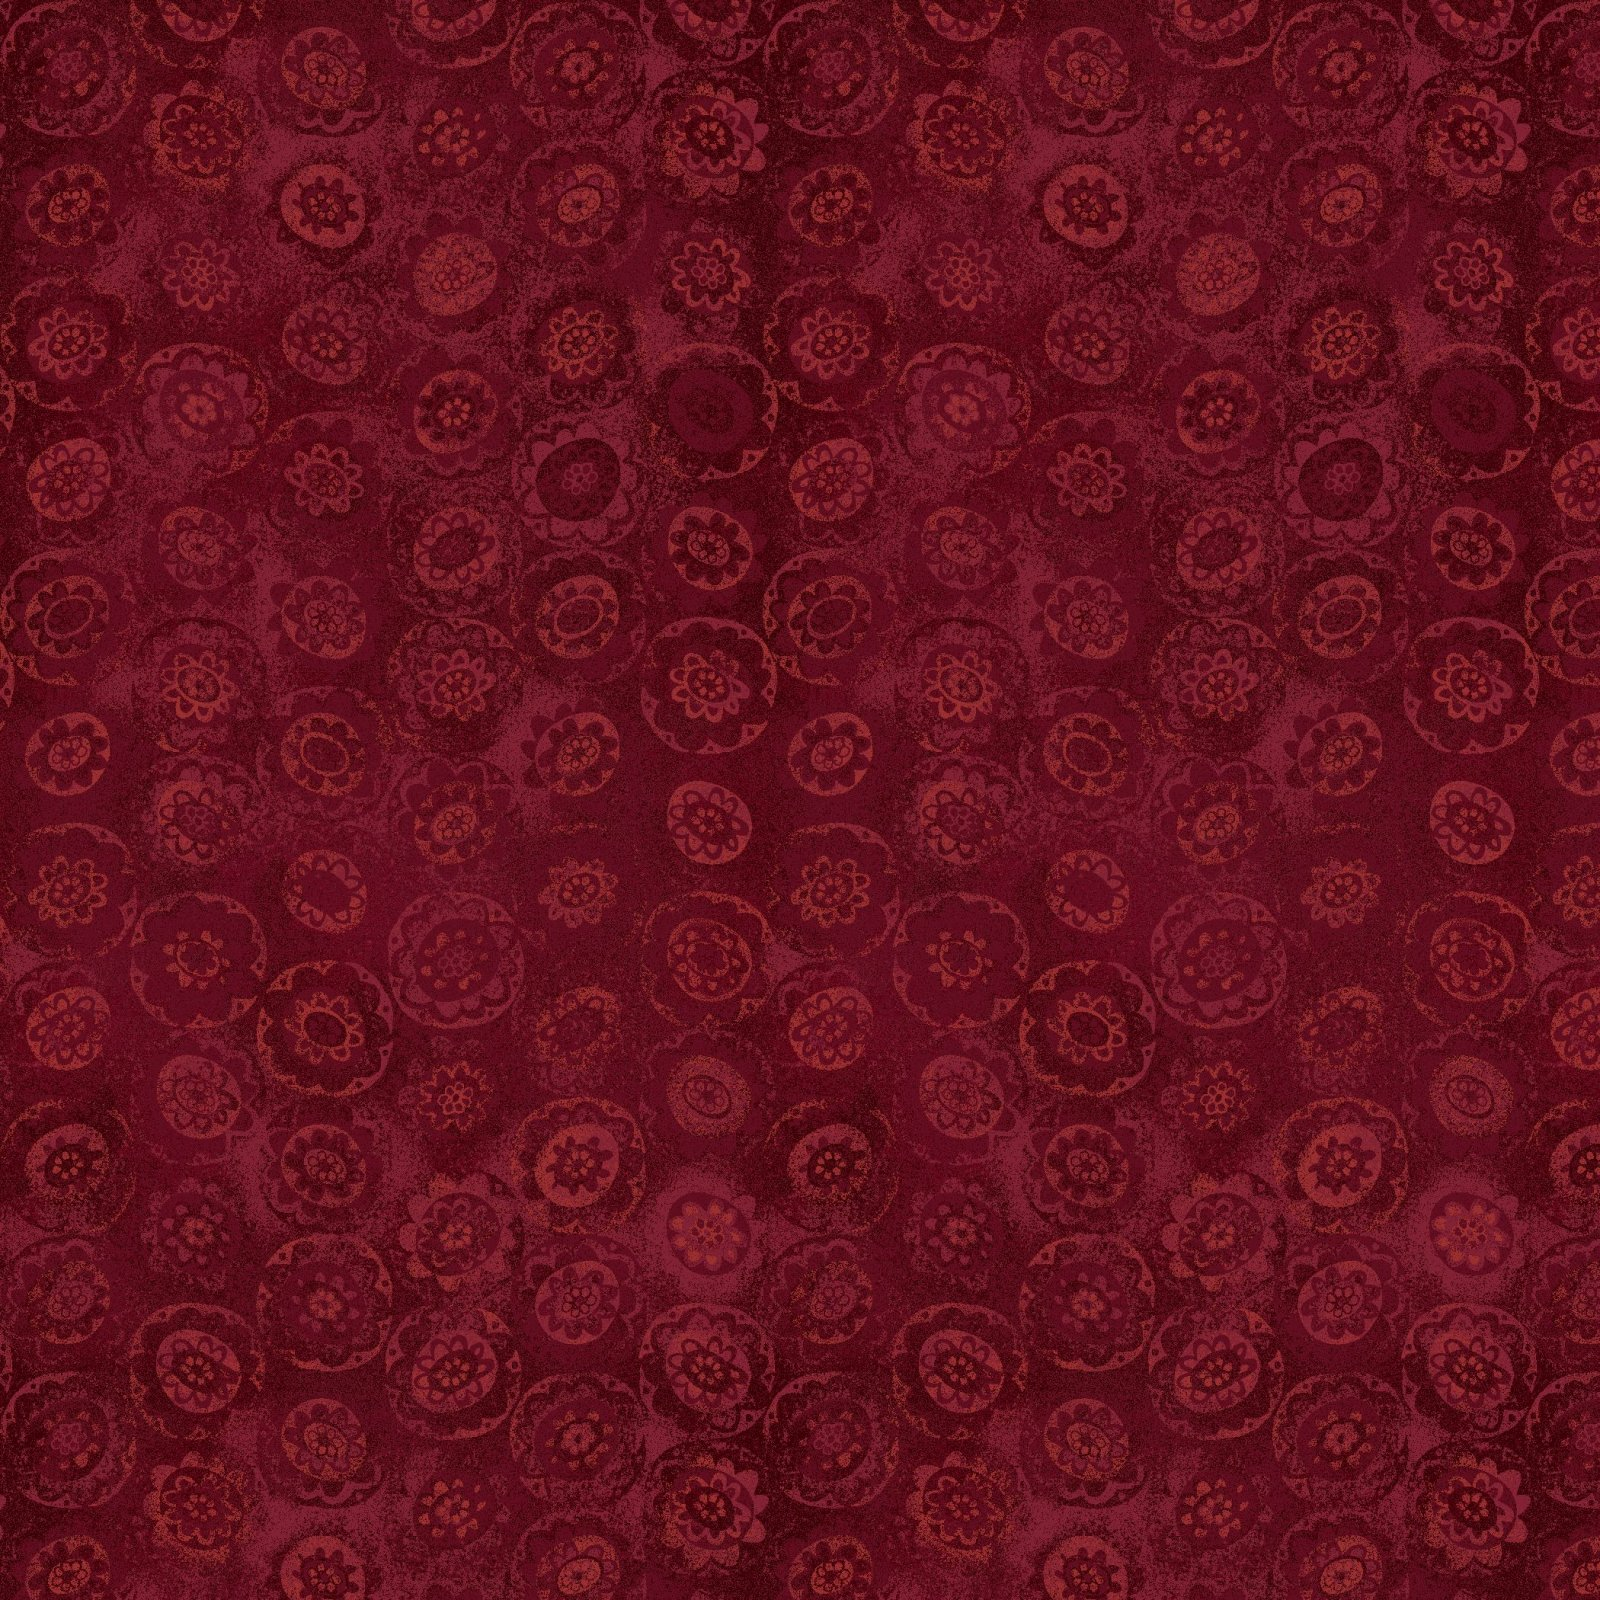 HG-Blessings of Home 2686-88 Red - Monotone Sunflowers